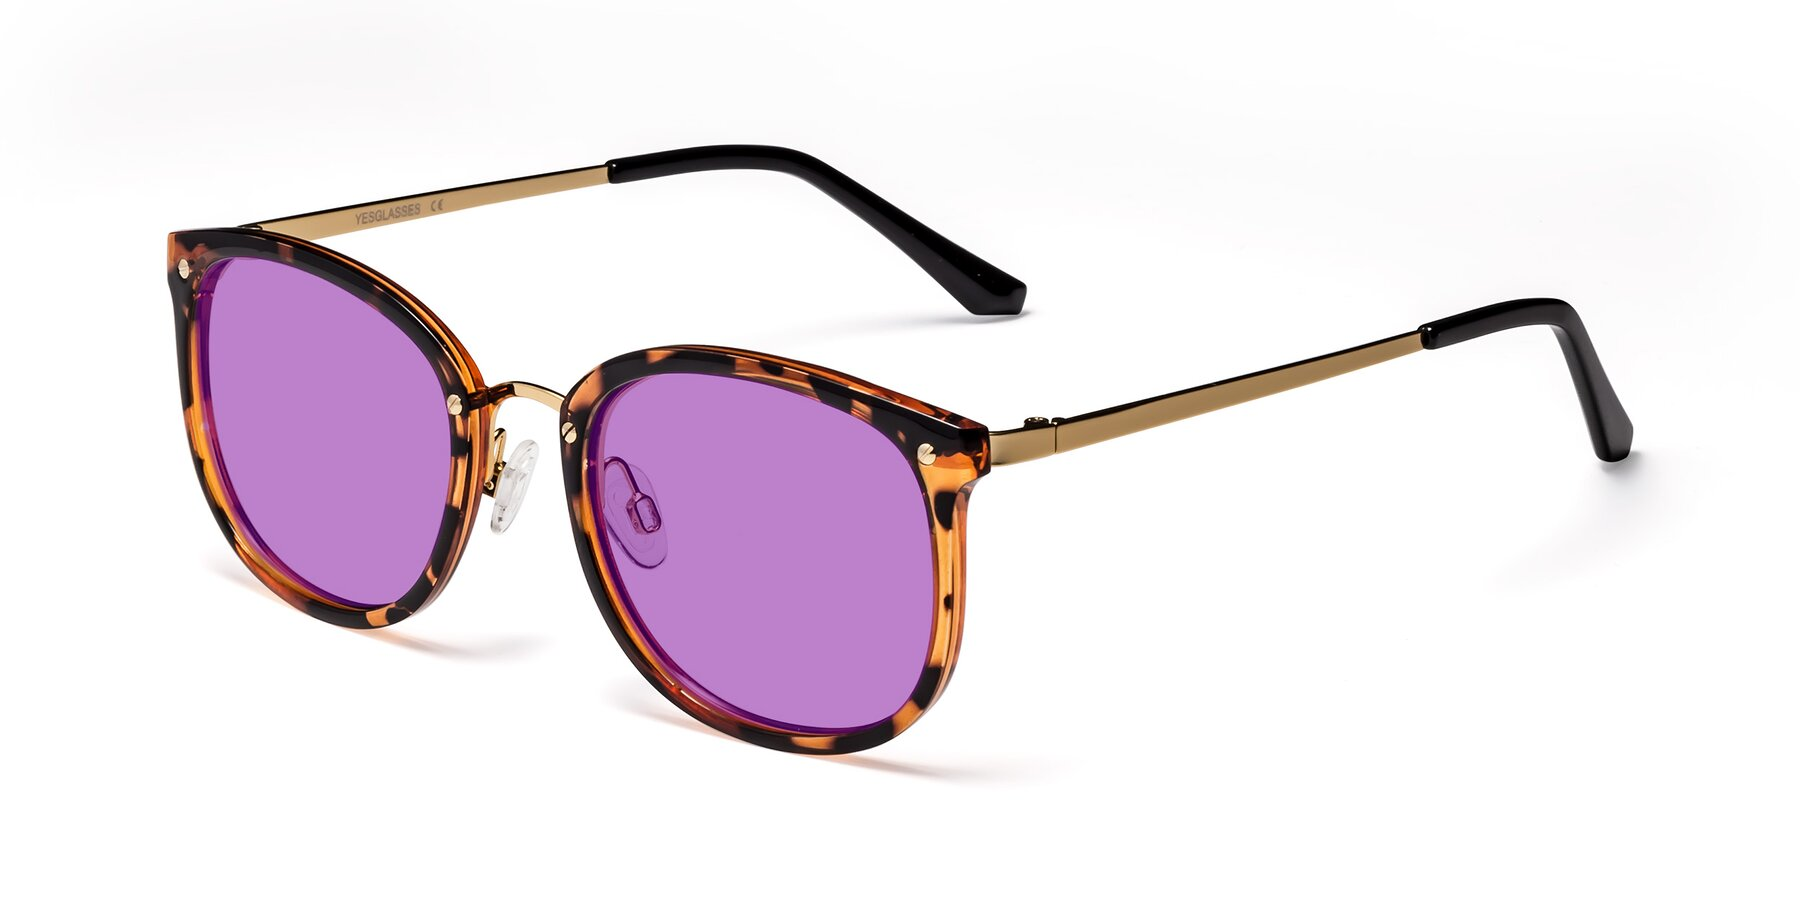 Angle of Timeless in Tortoise-Golden with Medium Purple Tinted Lenses